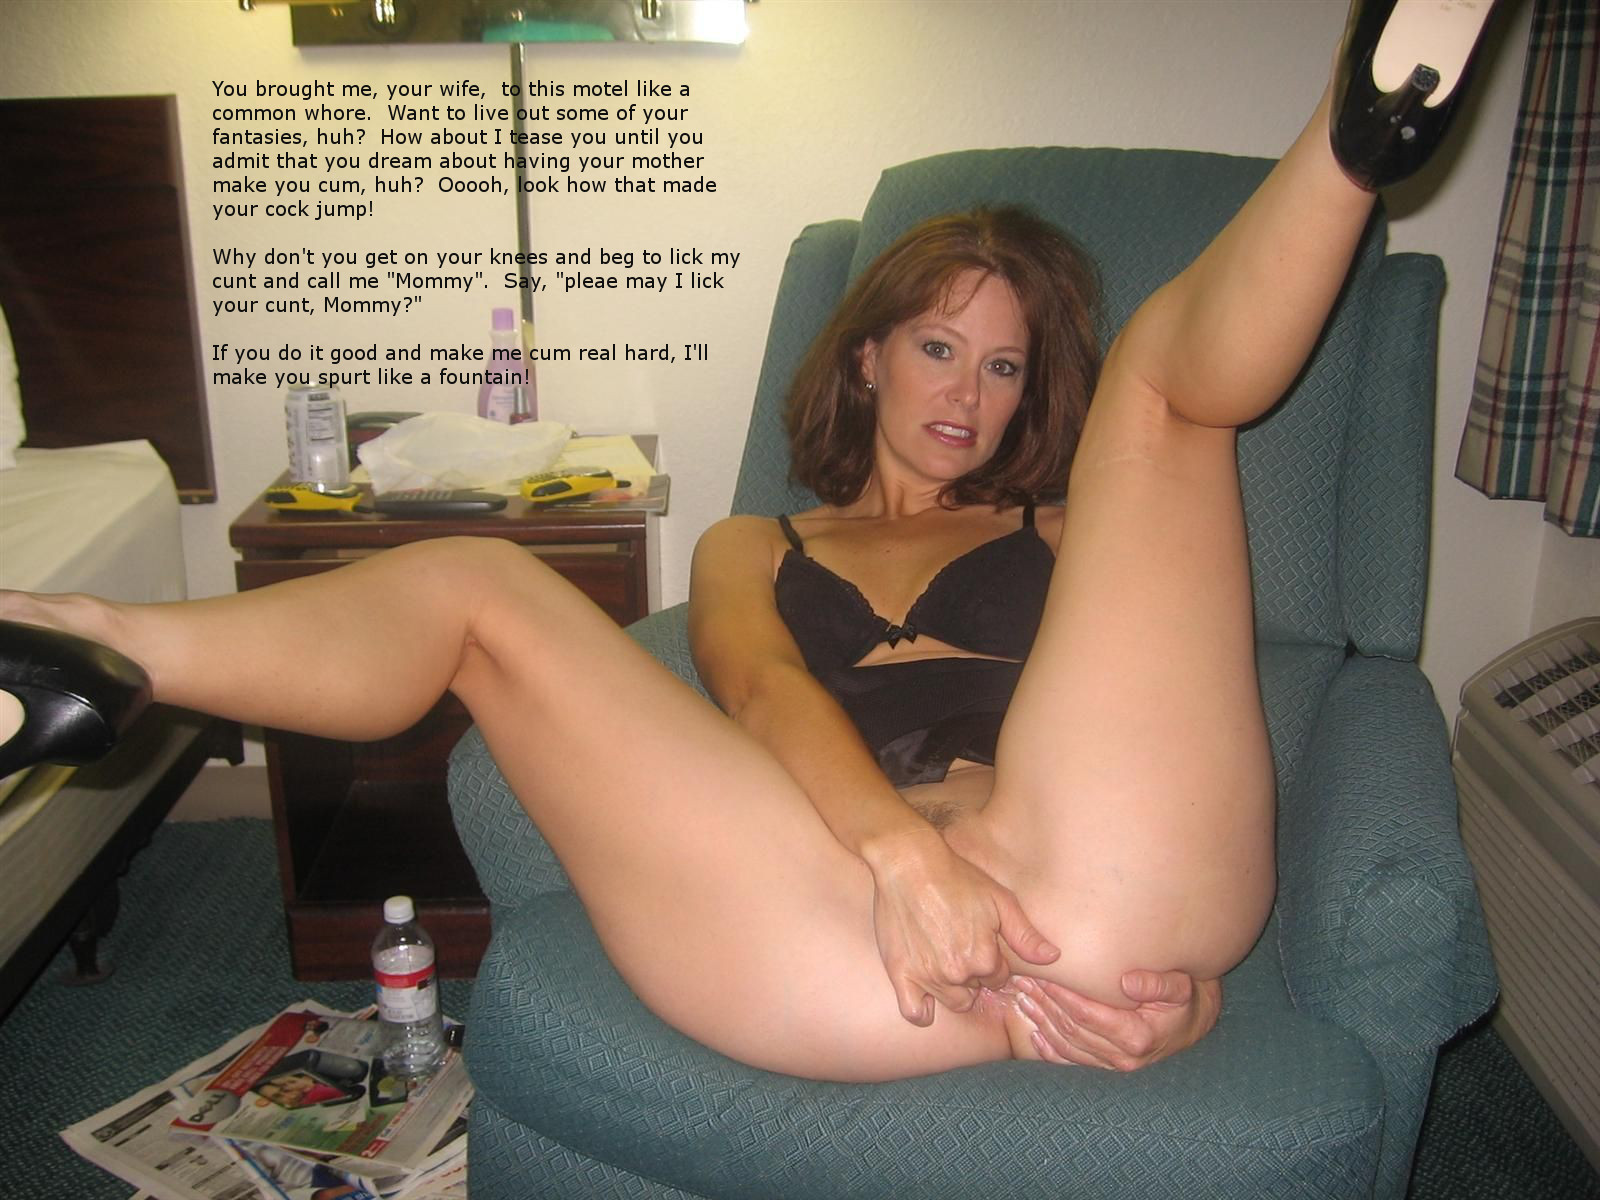 motel trip Moms and Sons Incest